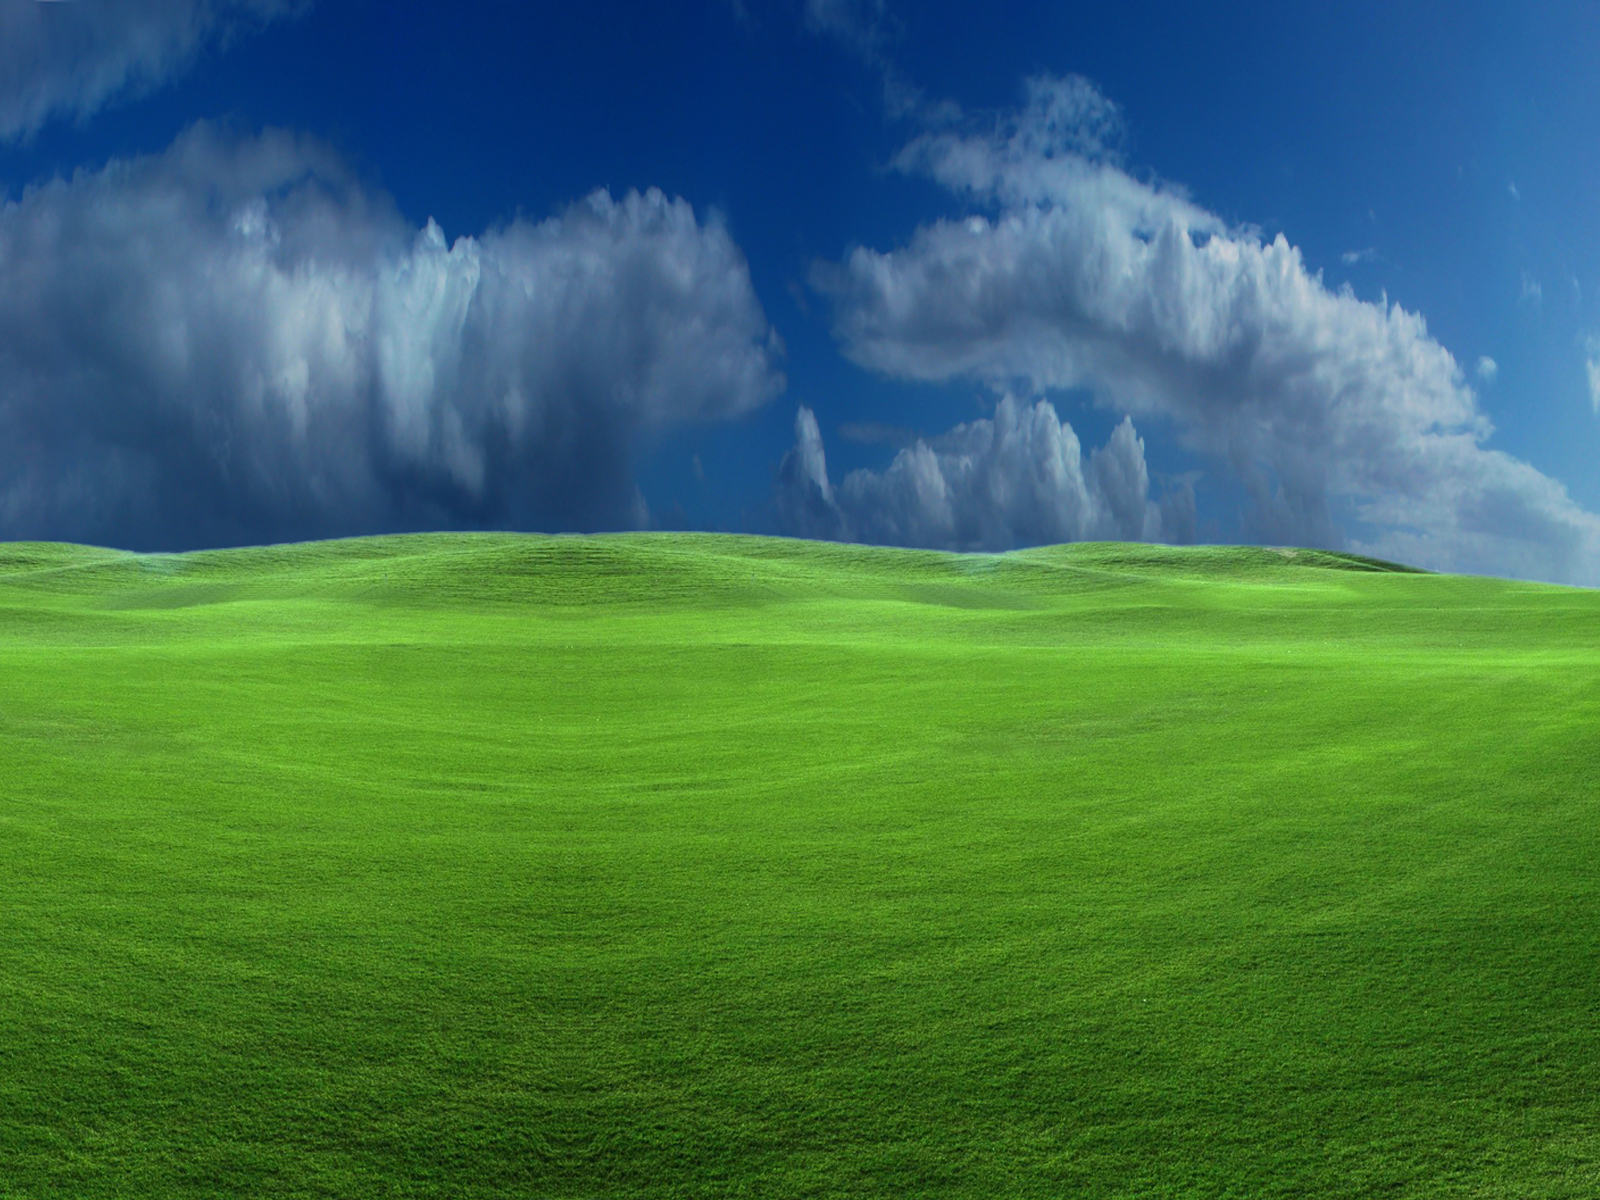 click to free download the wallpaper--Nature Landscape Images, Silence Before Storm, Peaceful Green Grass, Incredible Scene